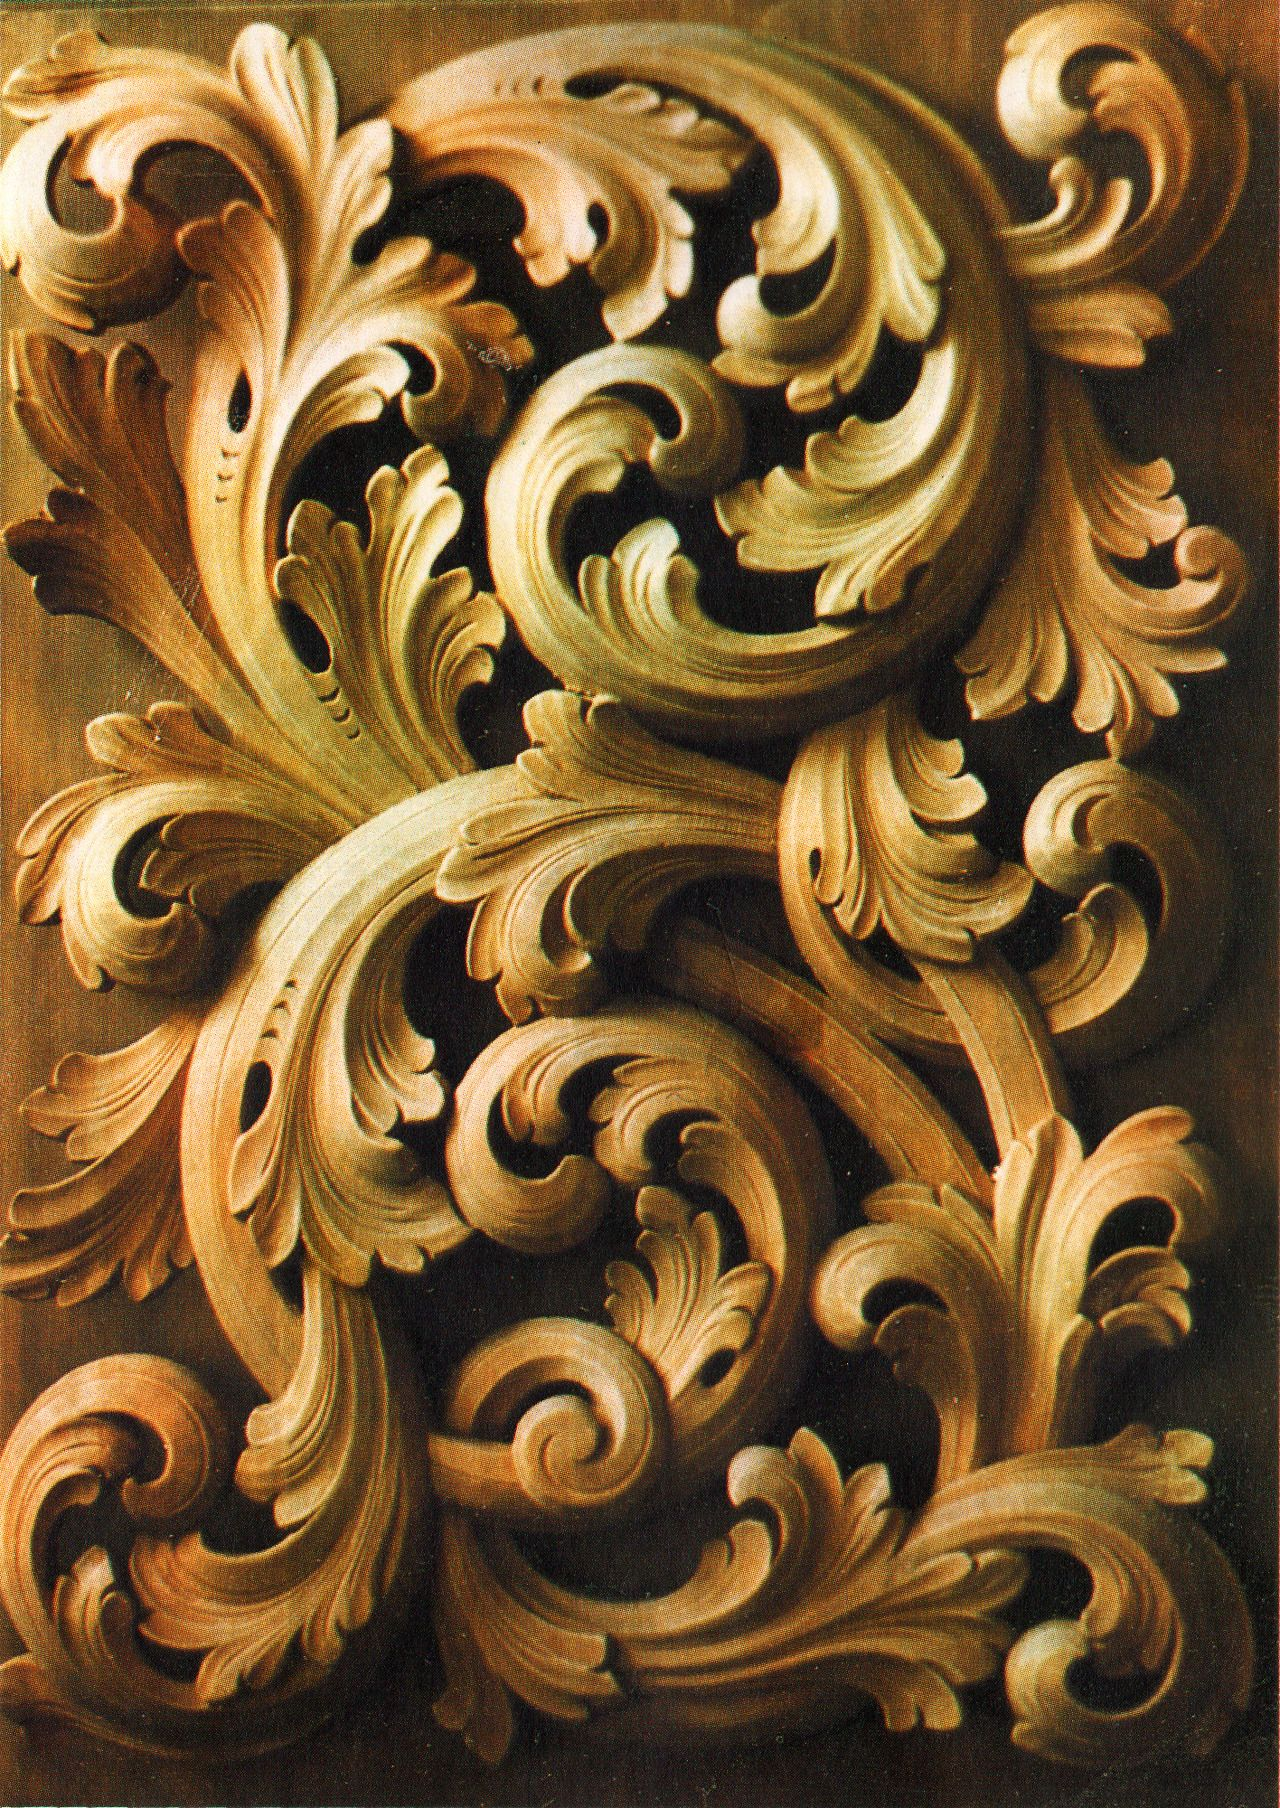 Love the subtle greens and golds akantus wood carvings